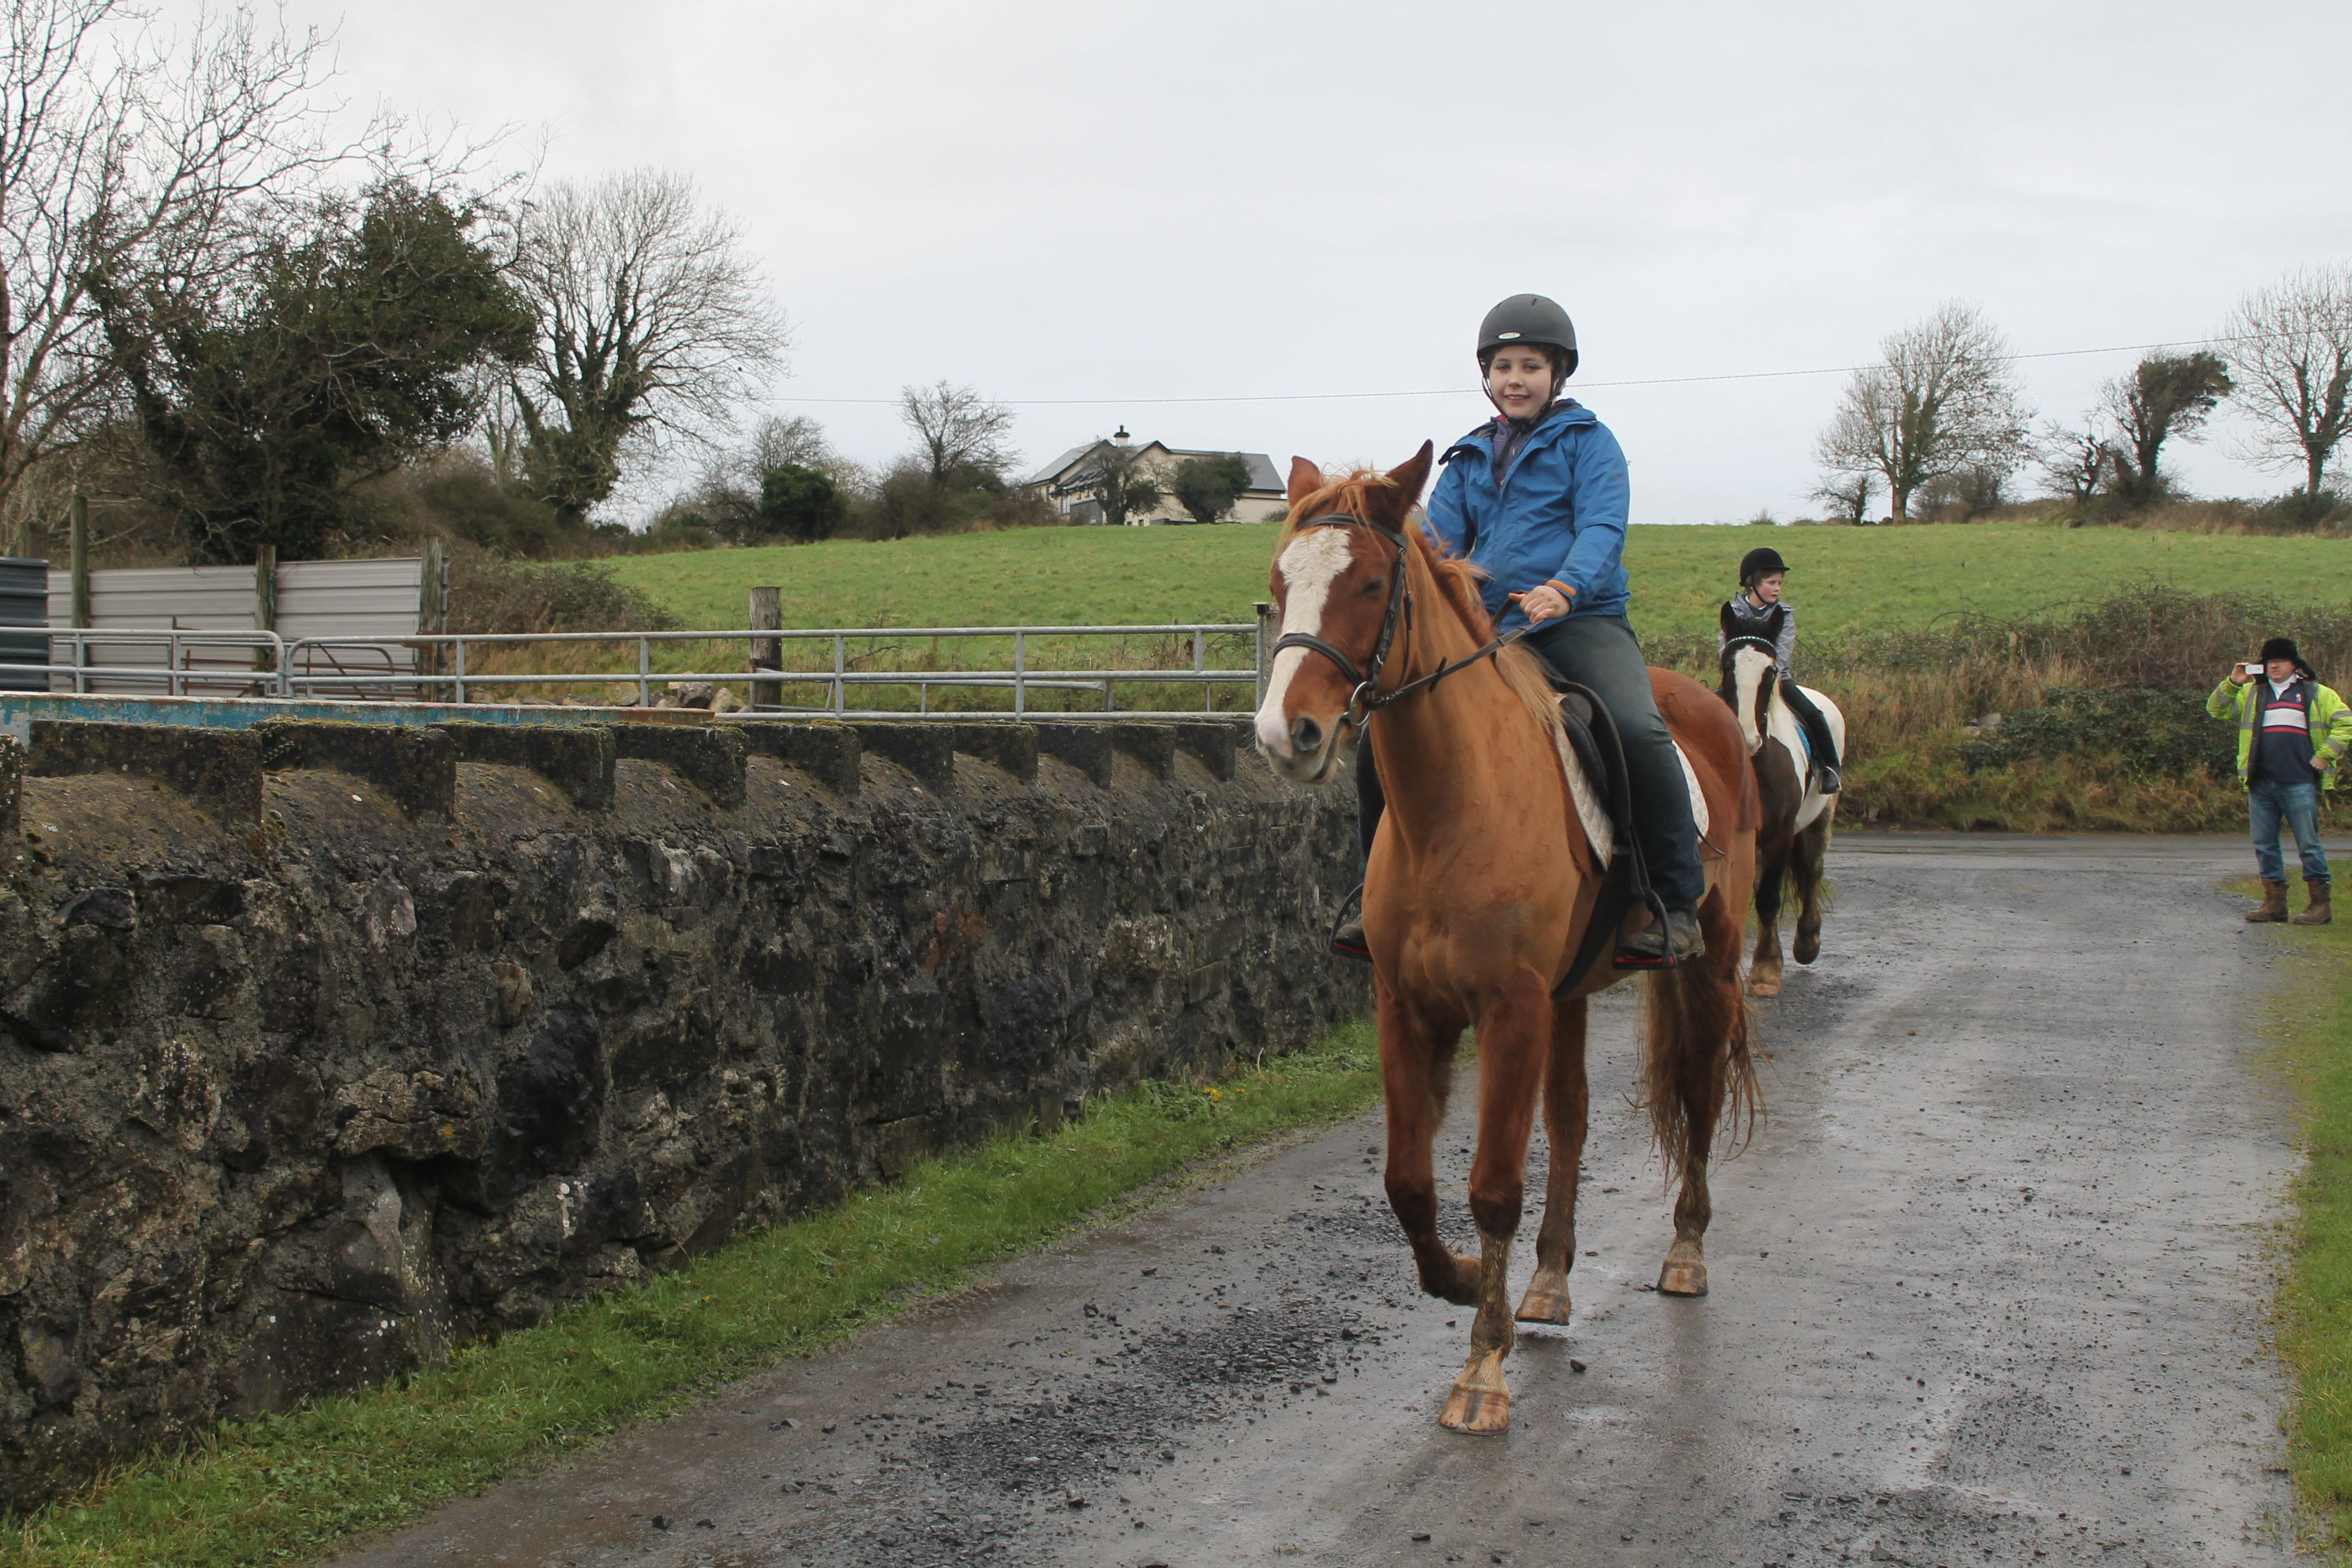 Sahara escorting Patrick down the village for their first ride together. Patrick is learning to ride and showing great potential. VIDEO: https://www.facebook.com/CoopersHillLivery/videos/983500545030449/?theater Visit our website for more information on #horseriding in #Galway #Ireland http://coopershilllivery.wix.com/coopers-hill-livery